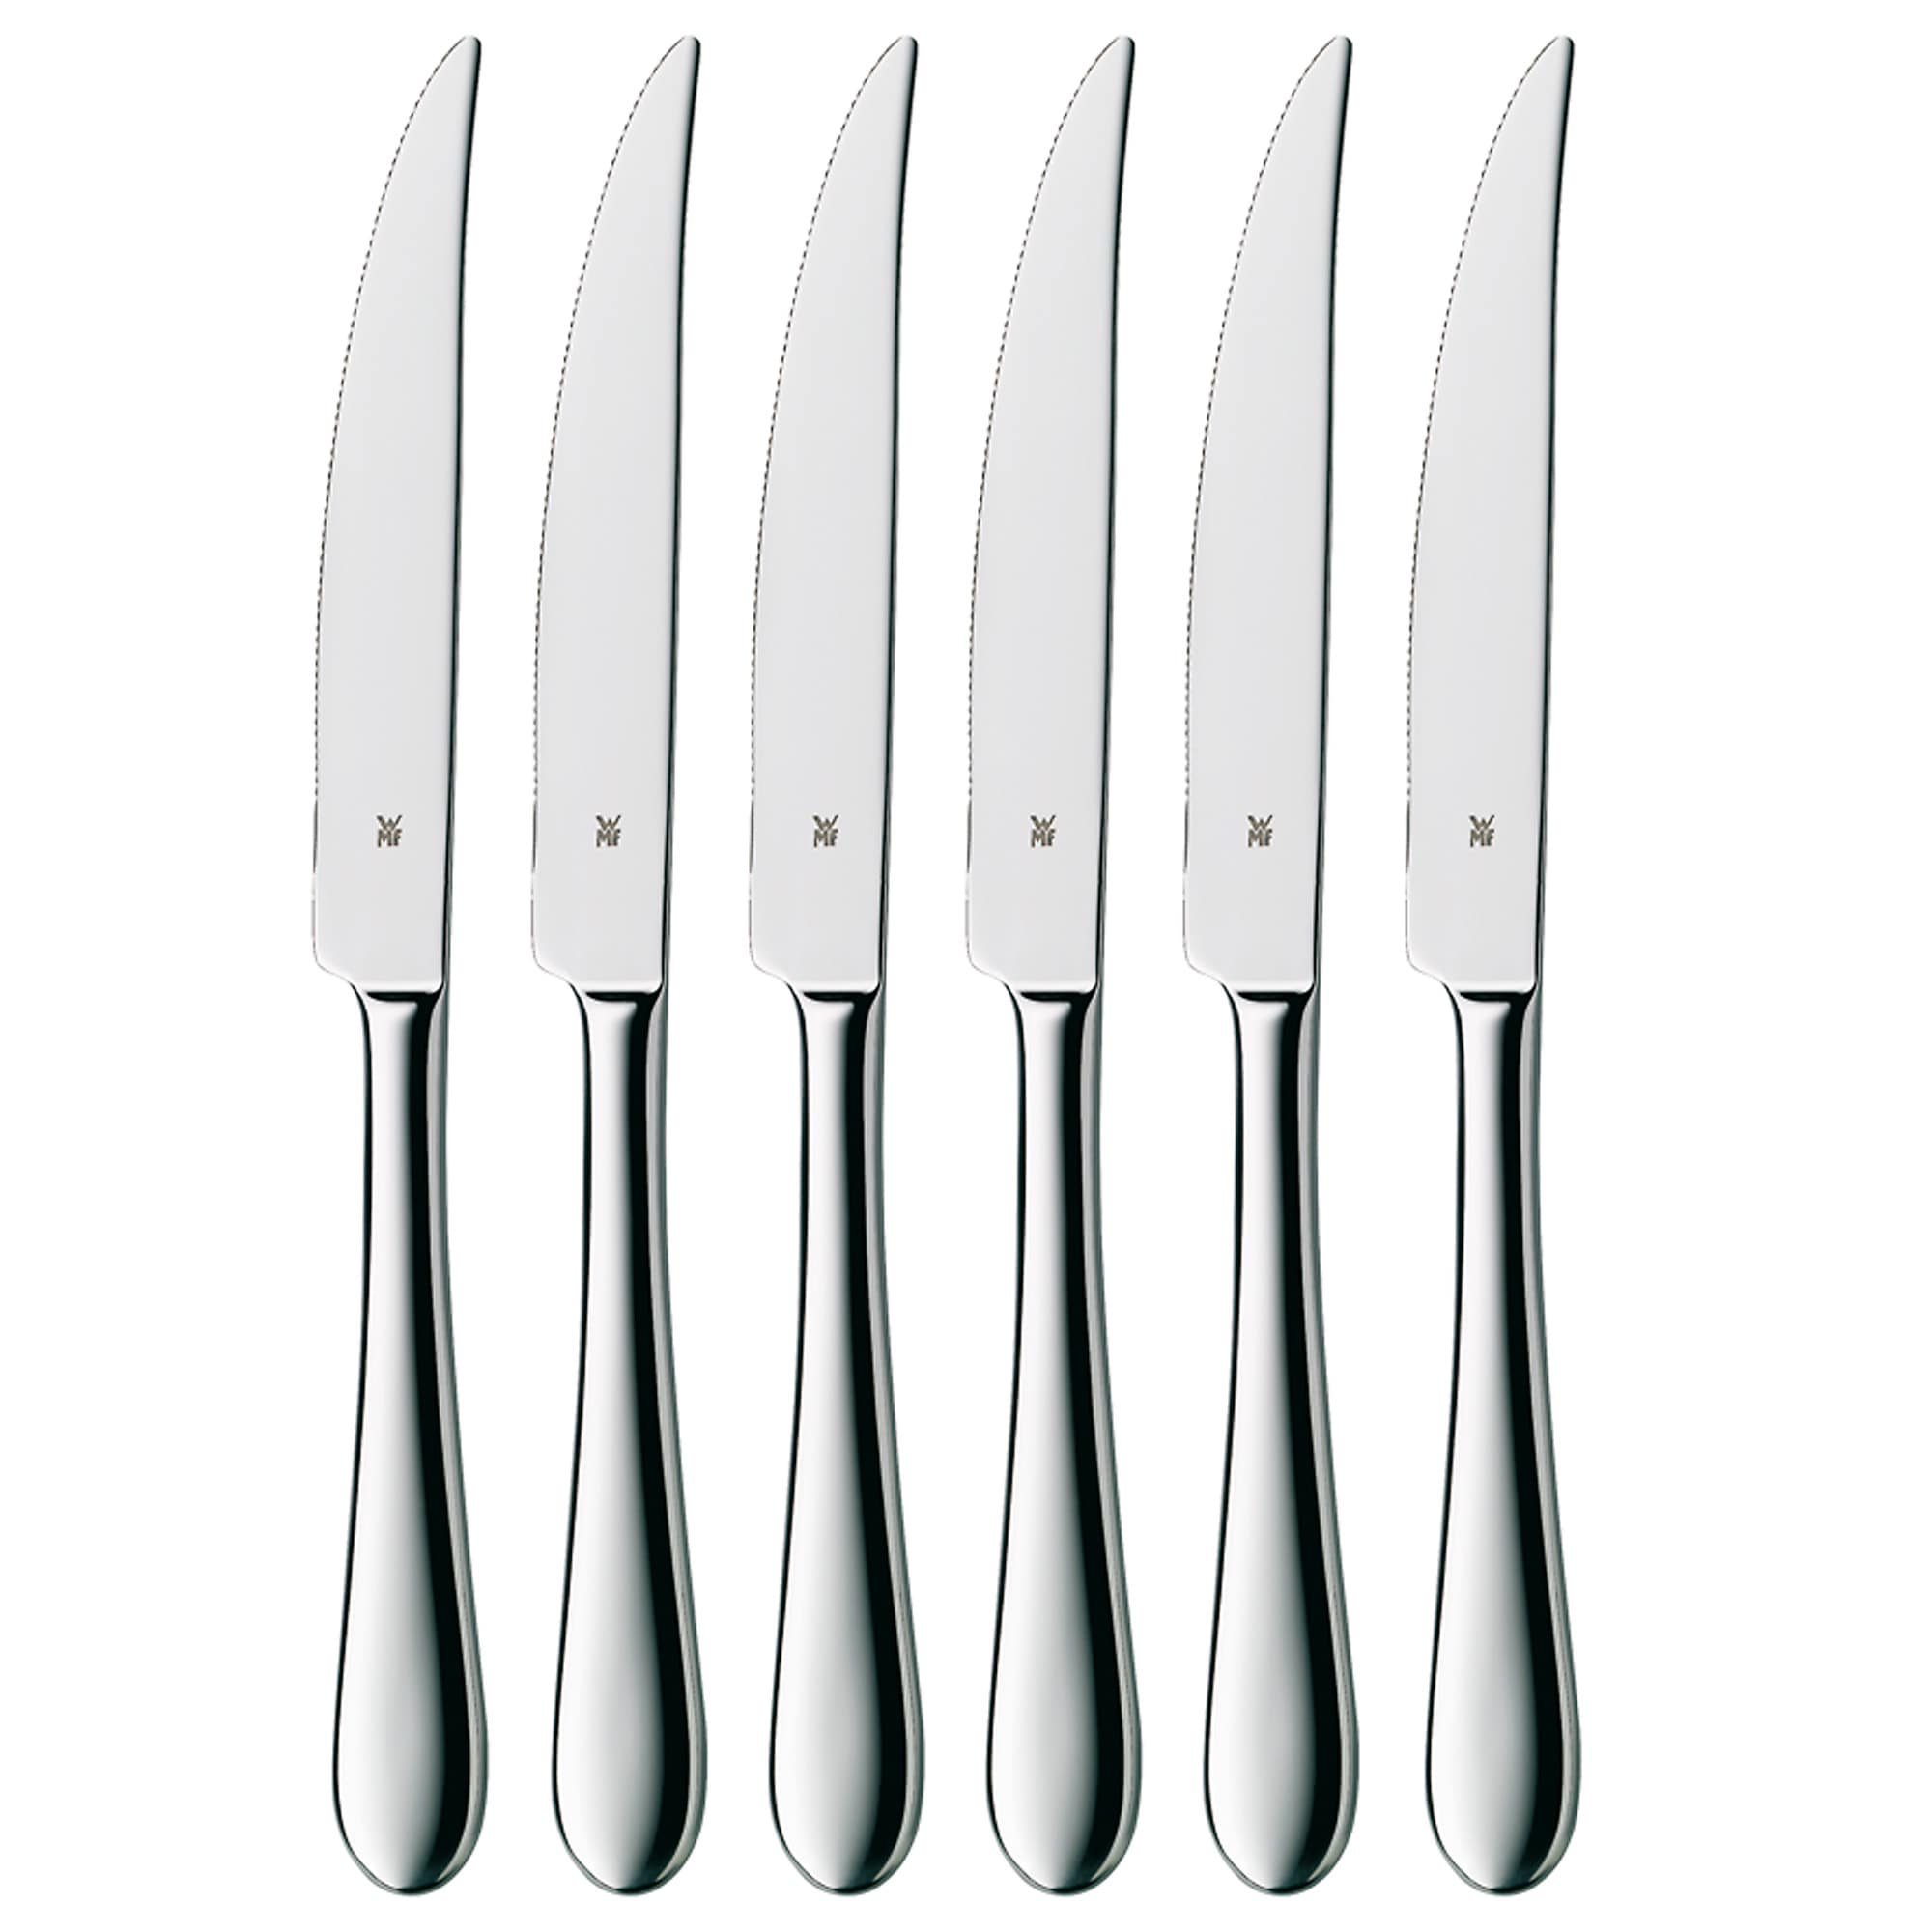 WMF Signum Stainless Steel Steak Knives (Set of 6)